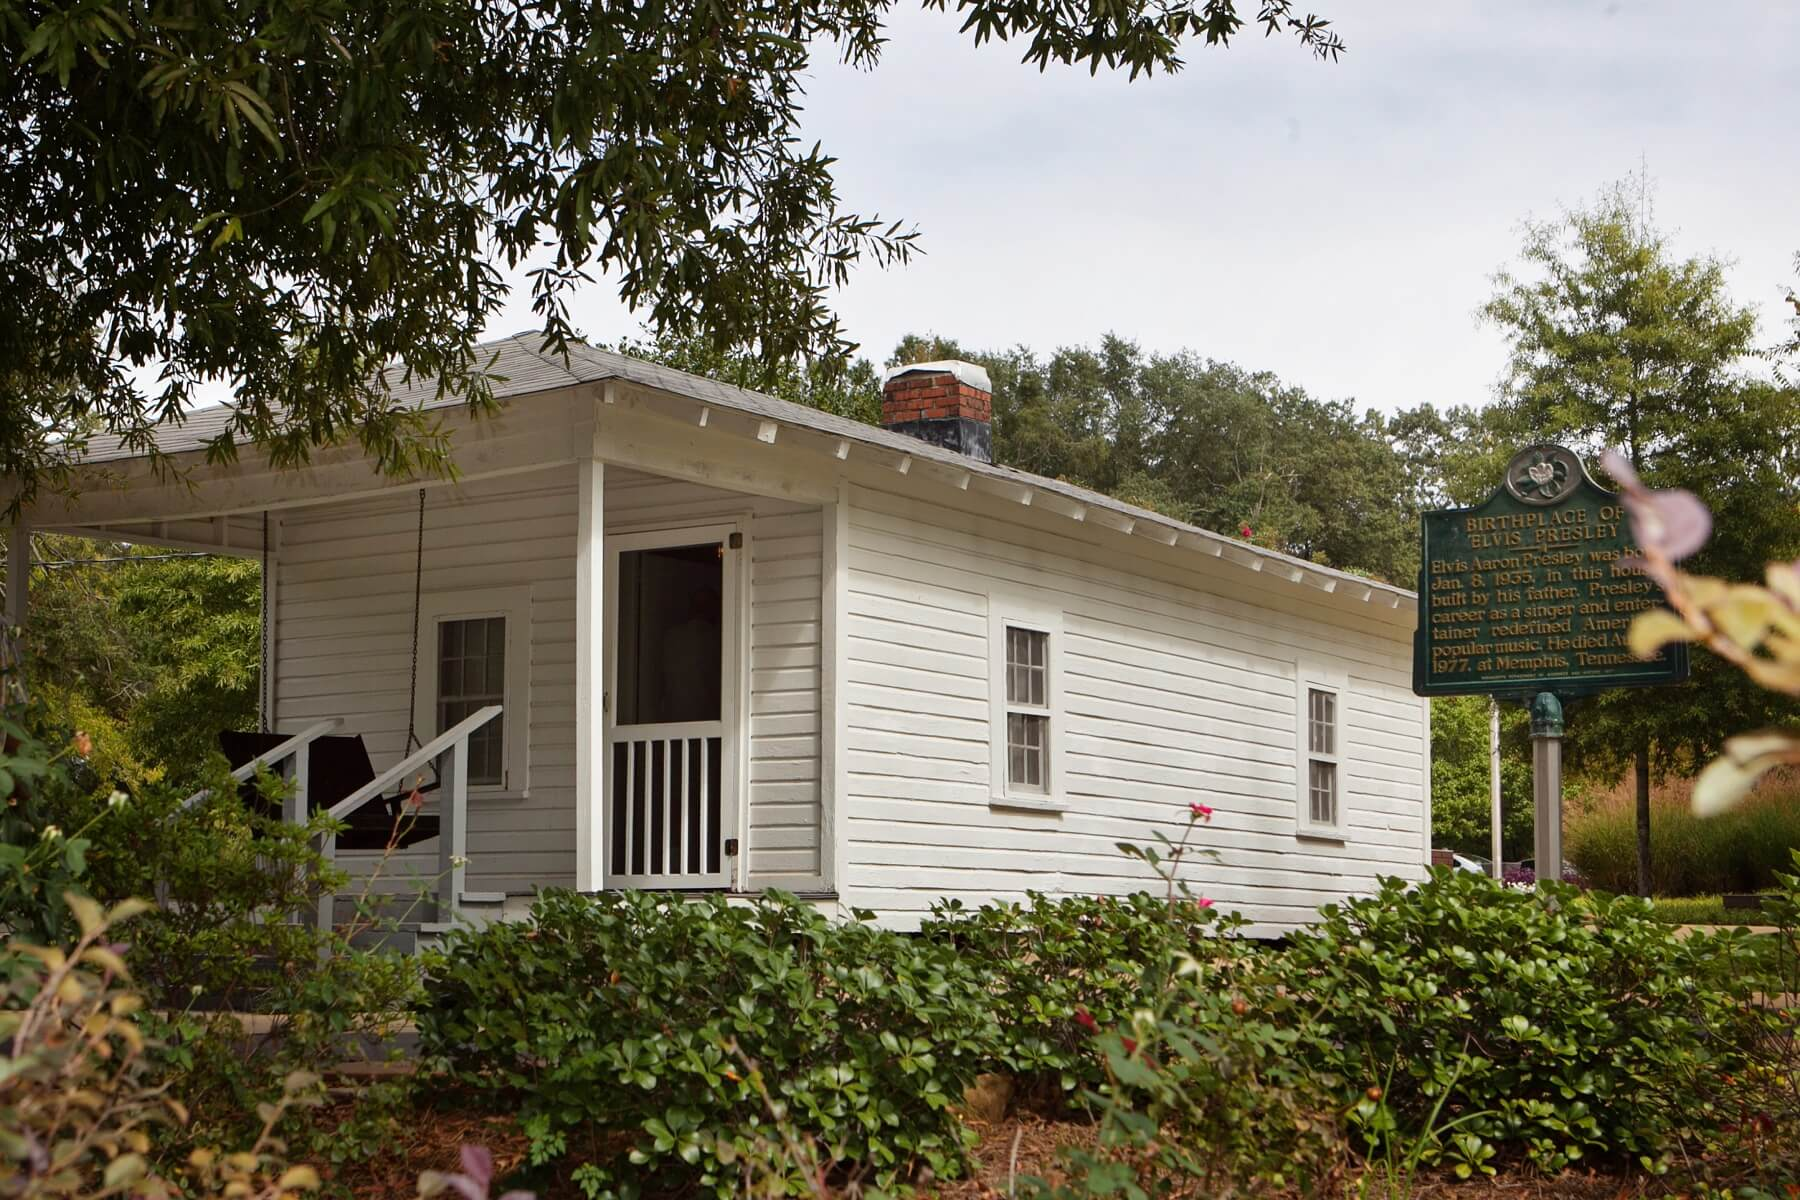 Make a visit to the Elvis Presley Birthplace while in his hometown.